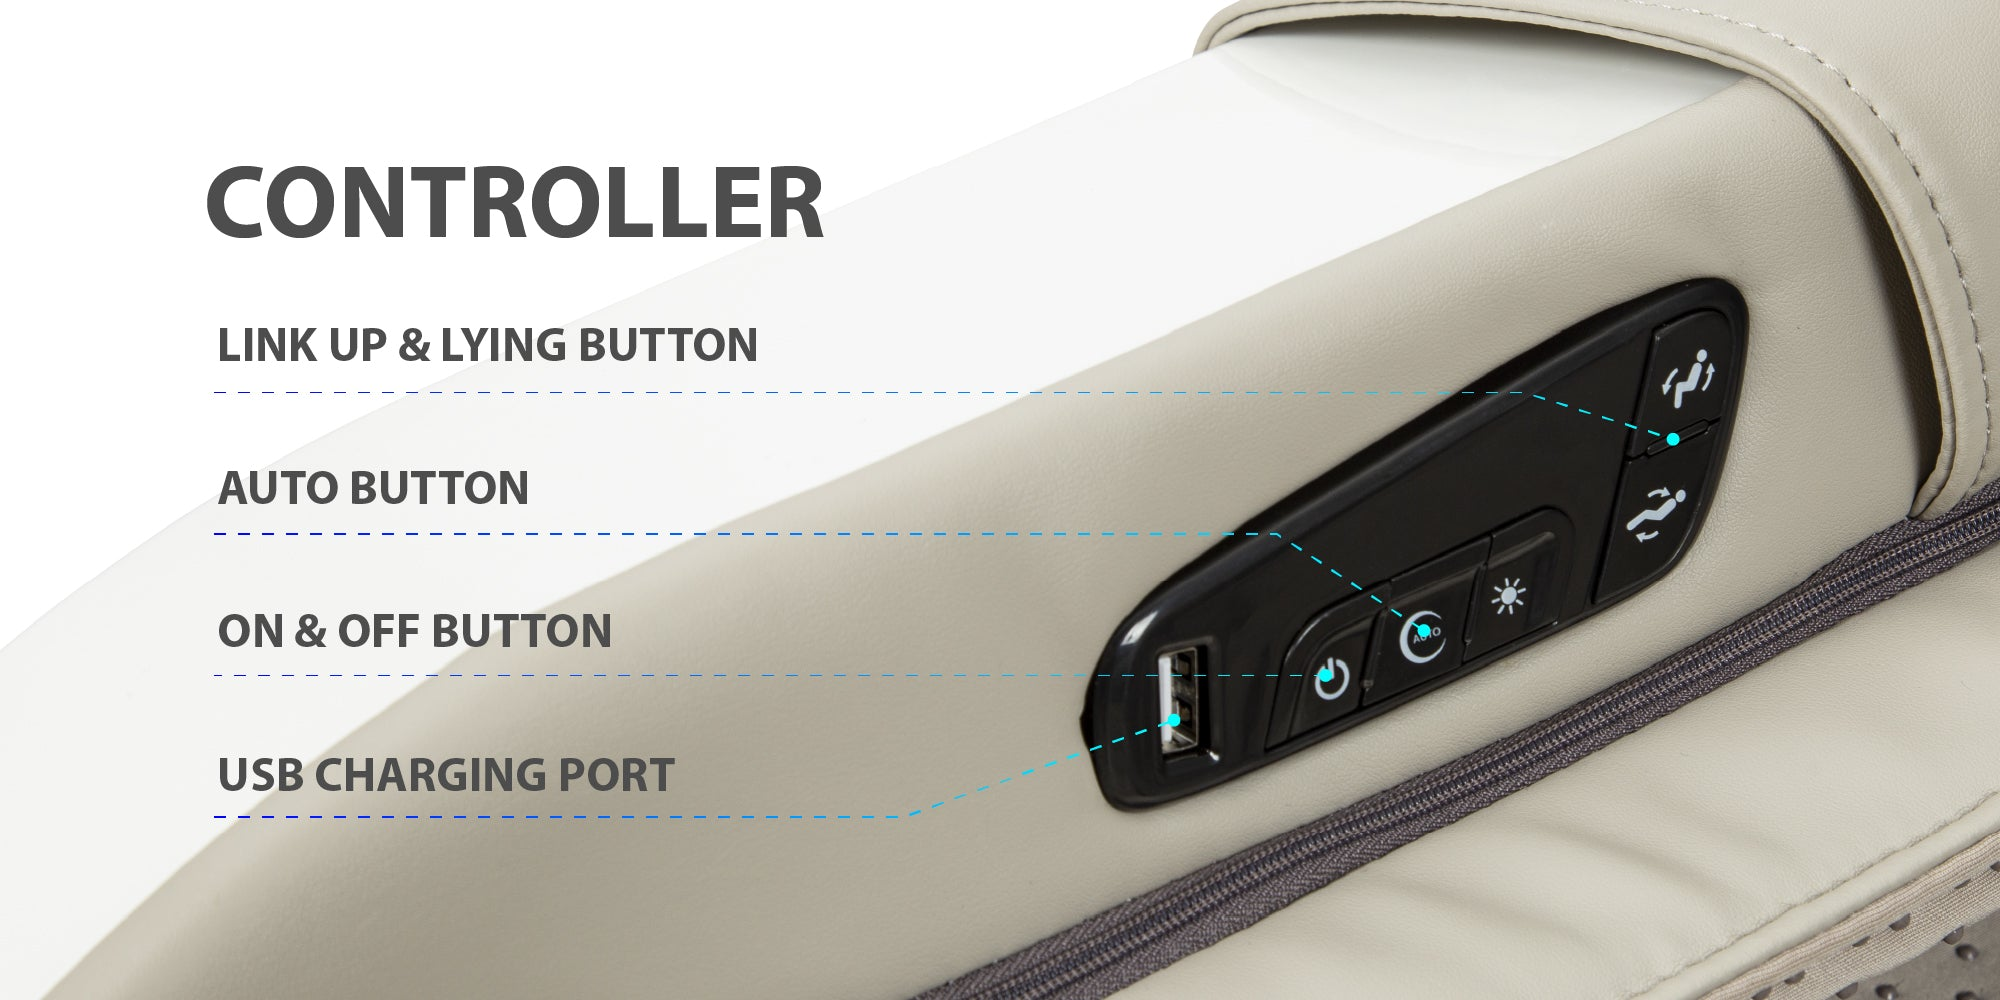 controller - link up & lying button, auto button, on&off button, usb charging port